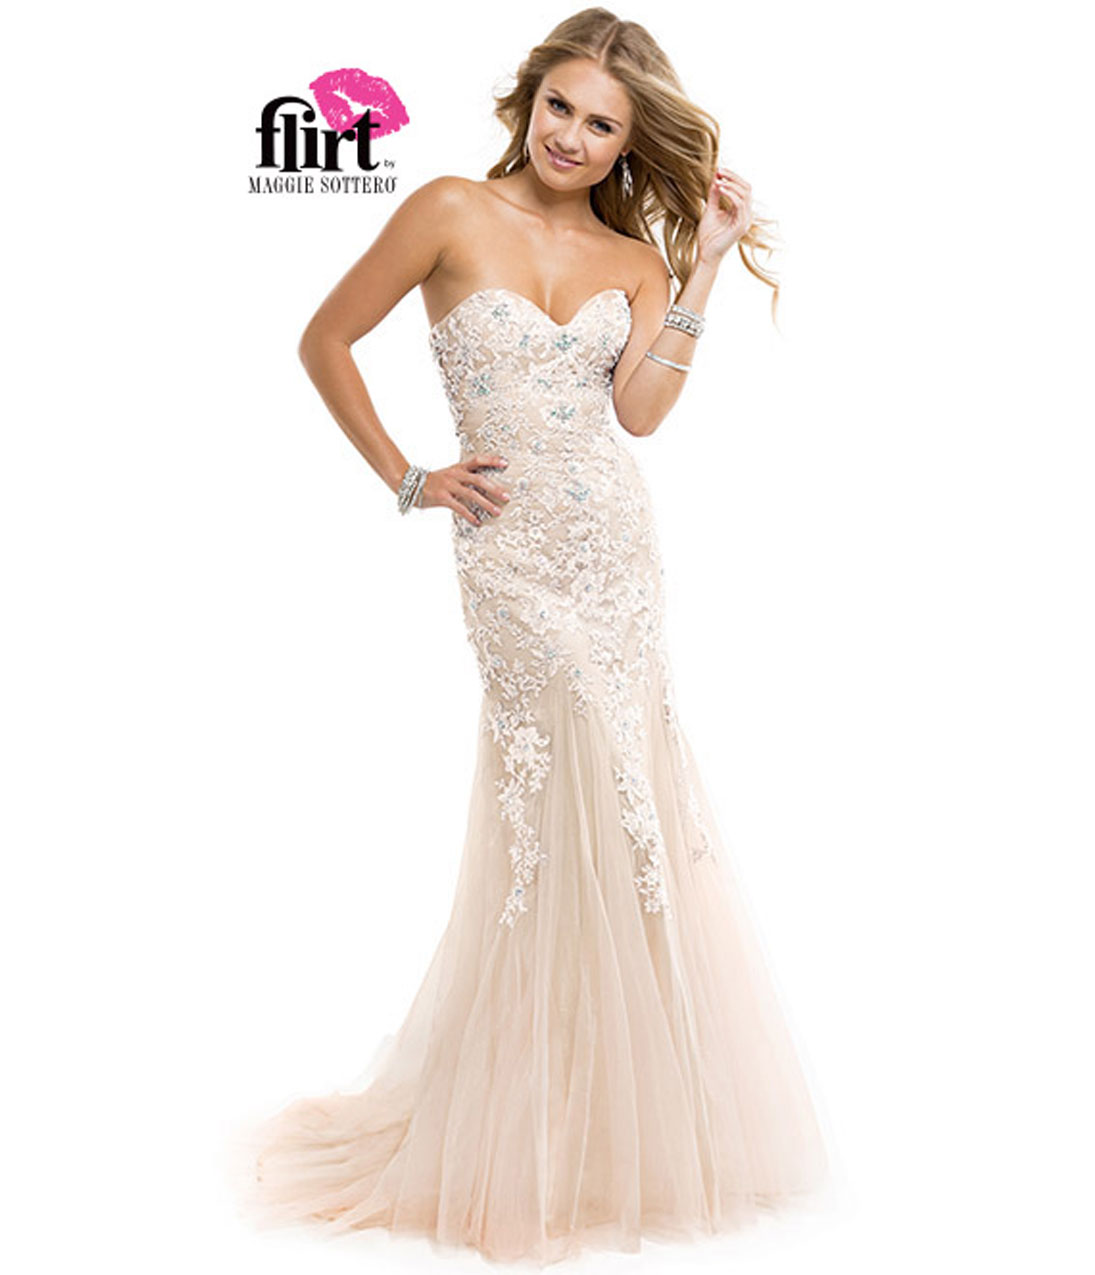 p4857 flirt prom dress Flirt 2014 prom dresses - available at cc's boutique tampa this flirt p4857 prom dress was made for a godess this dress has a sweetheart white evening.